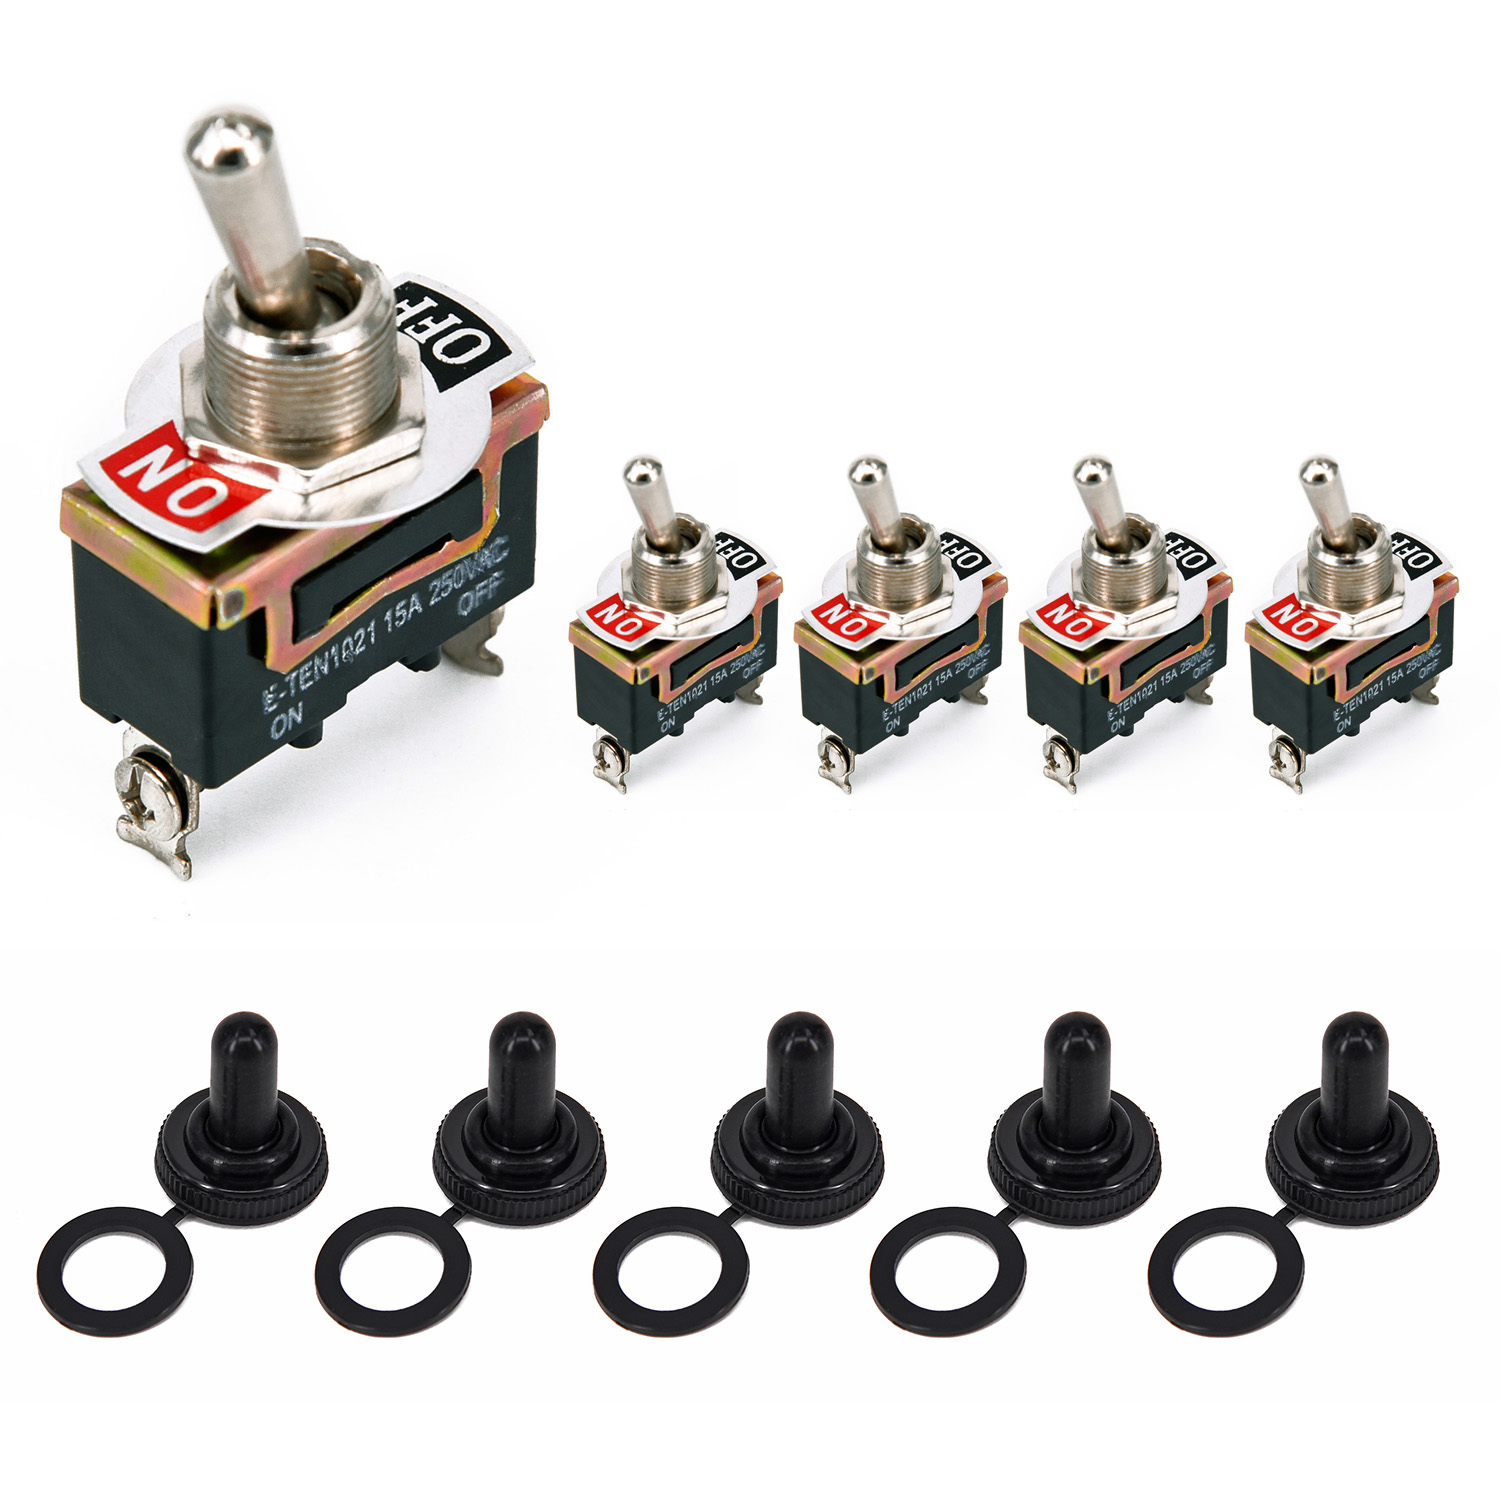 Rocker Switch 【2020 Ending Promotion】2‑Position Switch Durable KCD1 Heat Resistance Industrial Equipment for Household Home Electrical Equipment